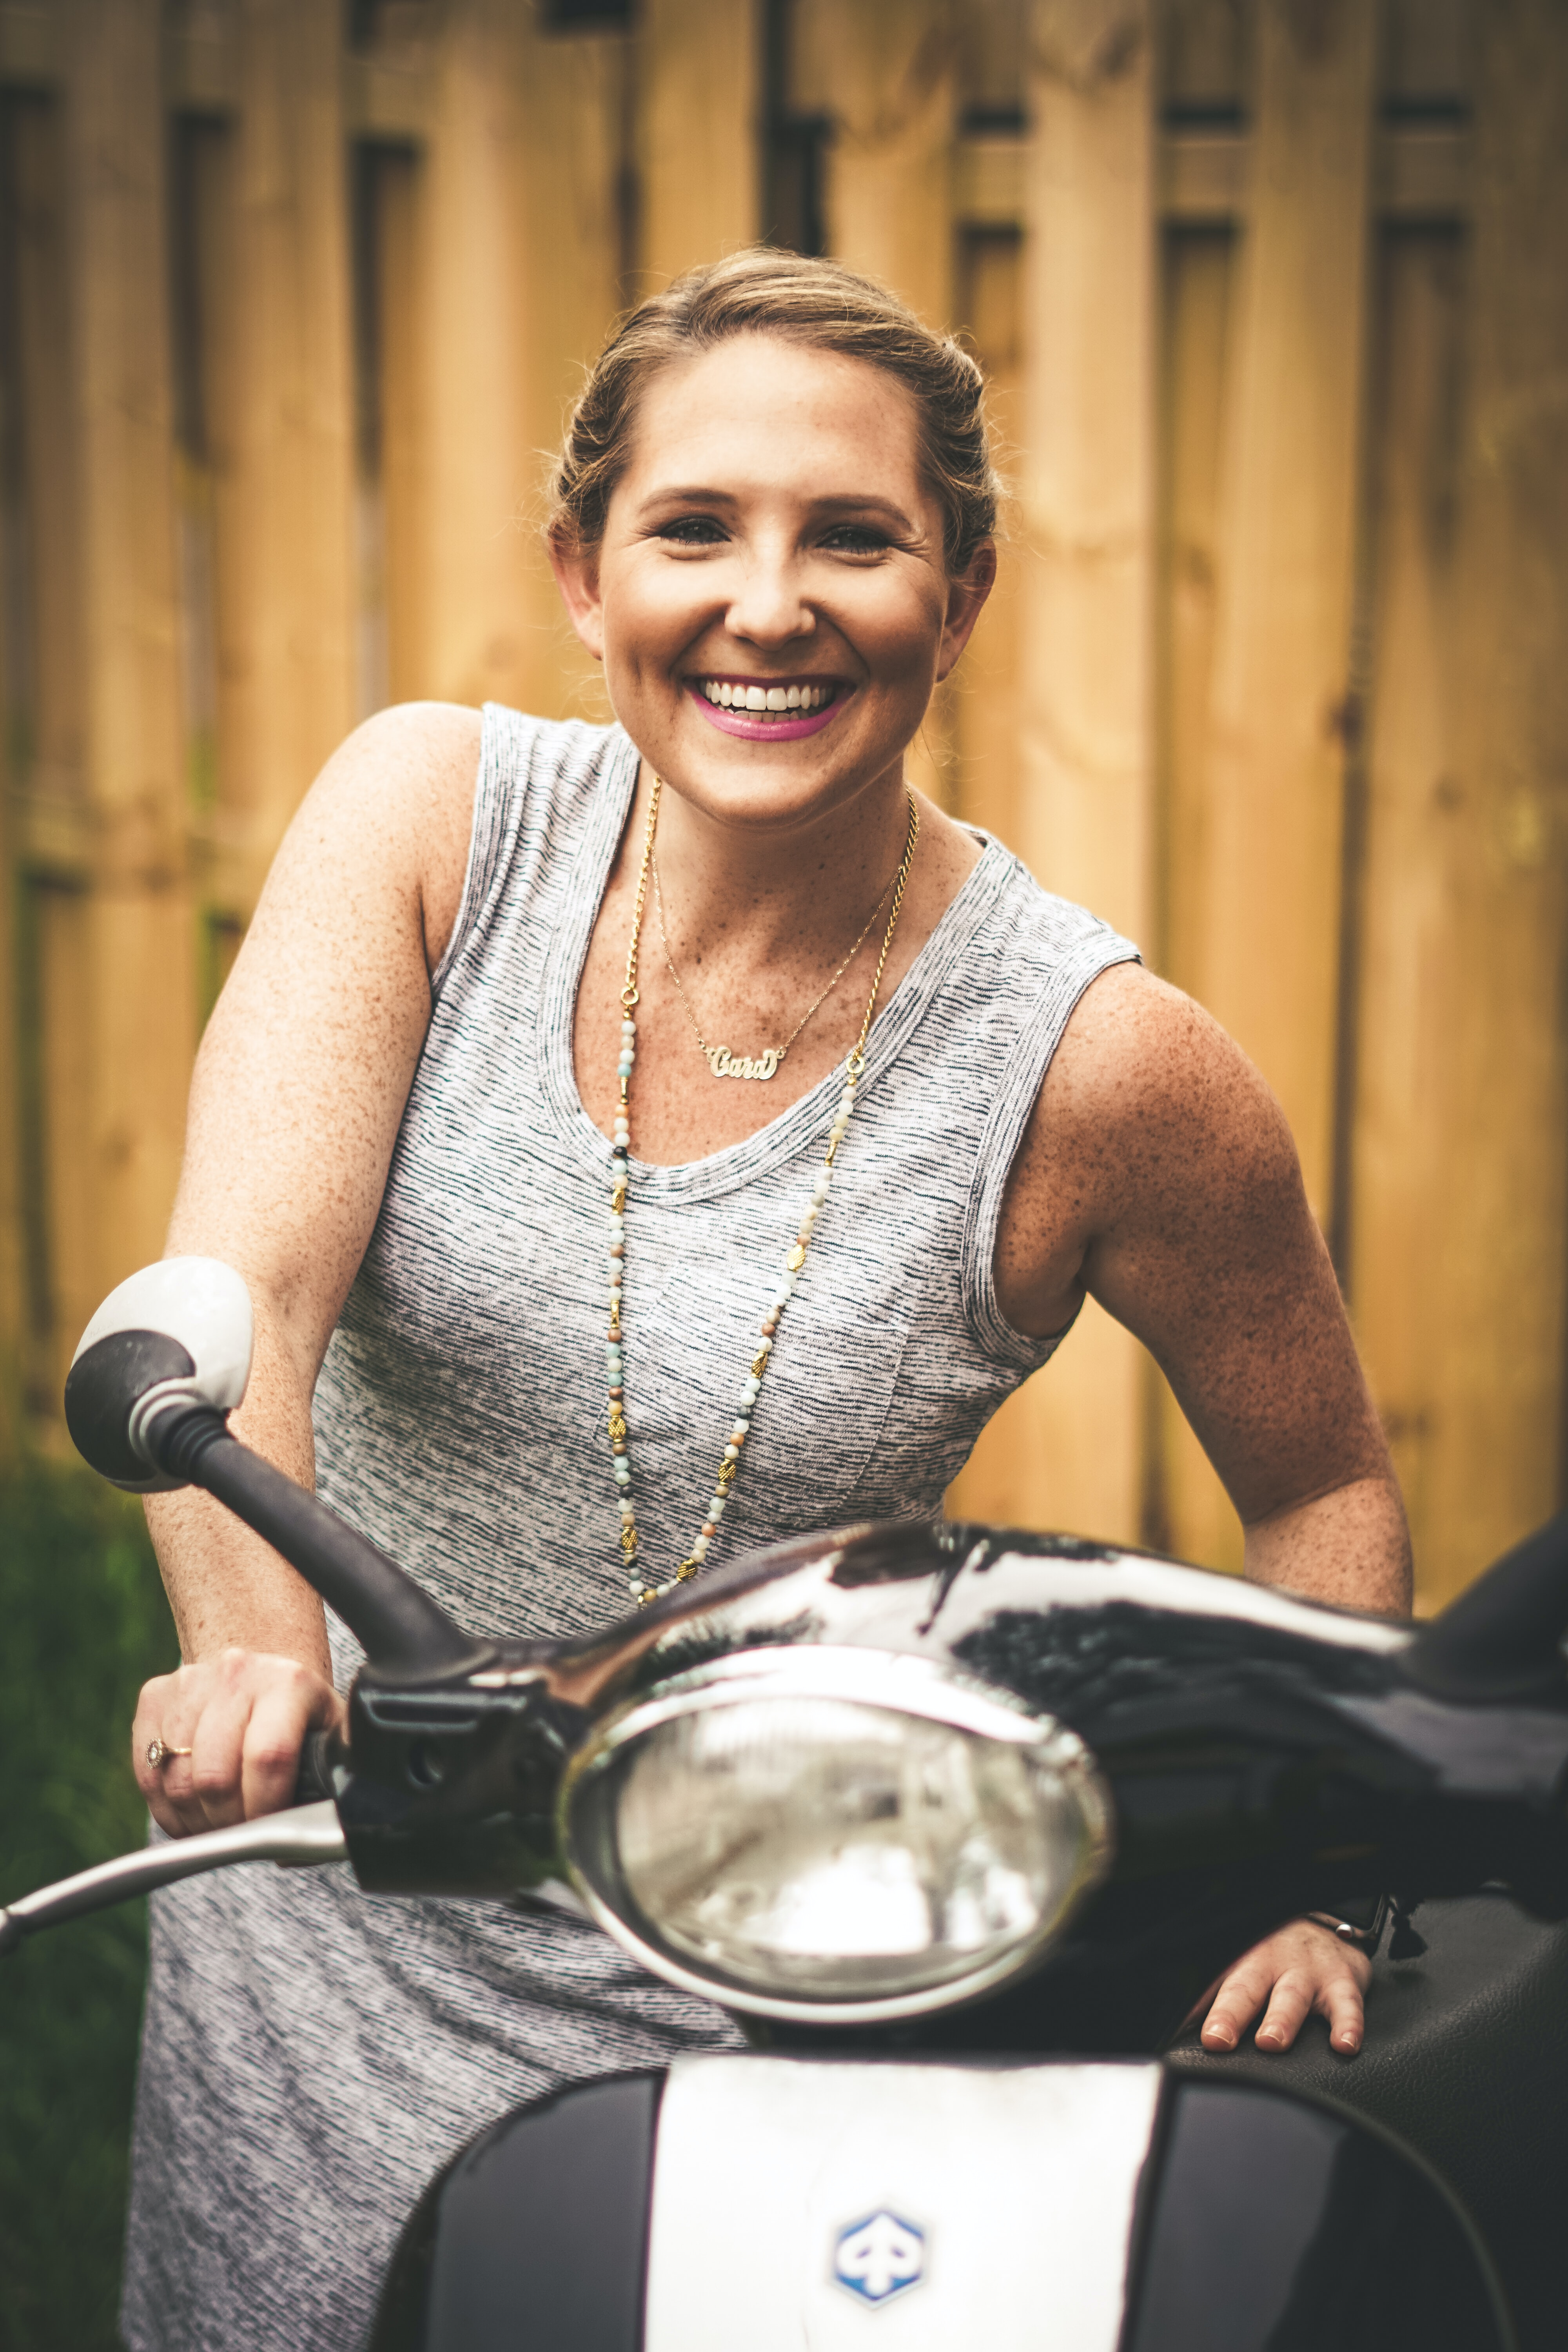 smiling woman holding black and gray motor scooter